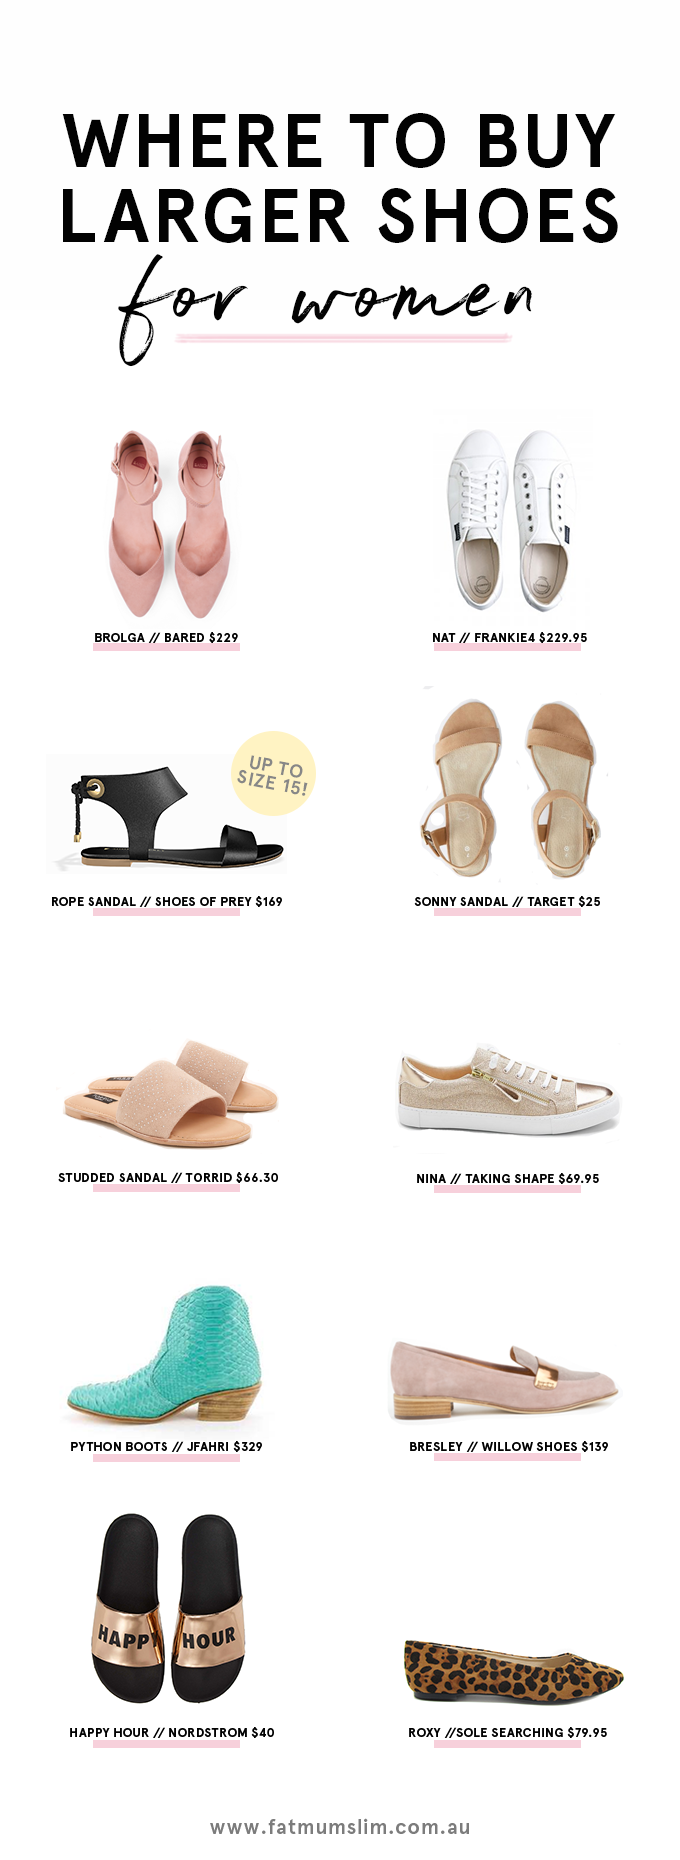 Where To Buy Larger Shoes For Women Fat Mum Slim